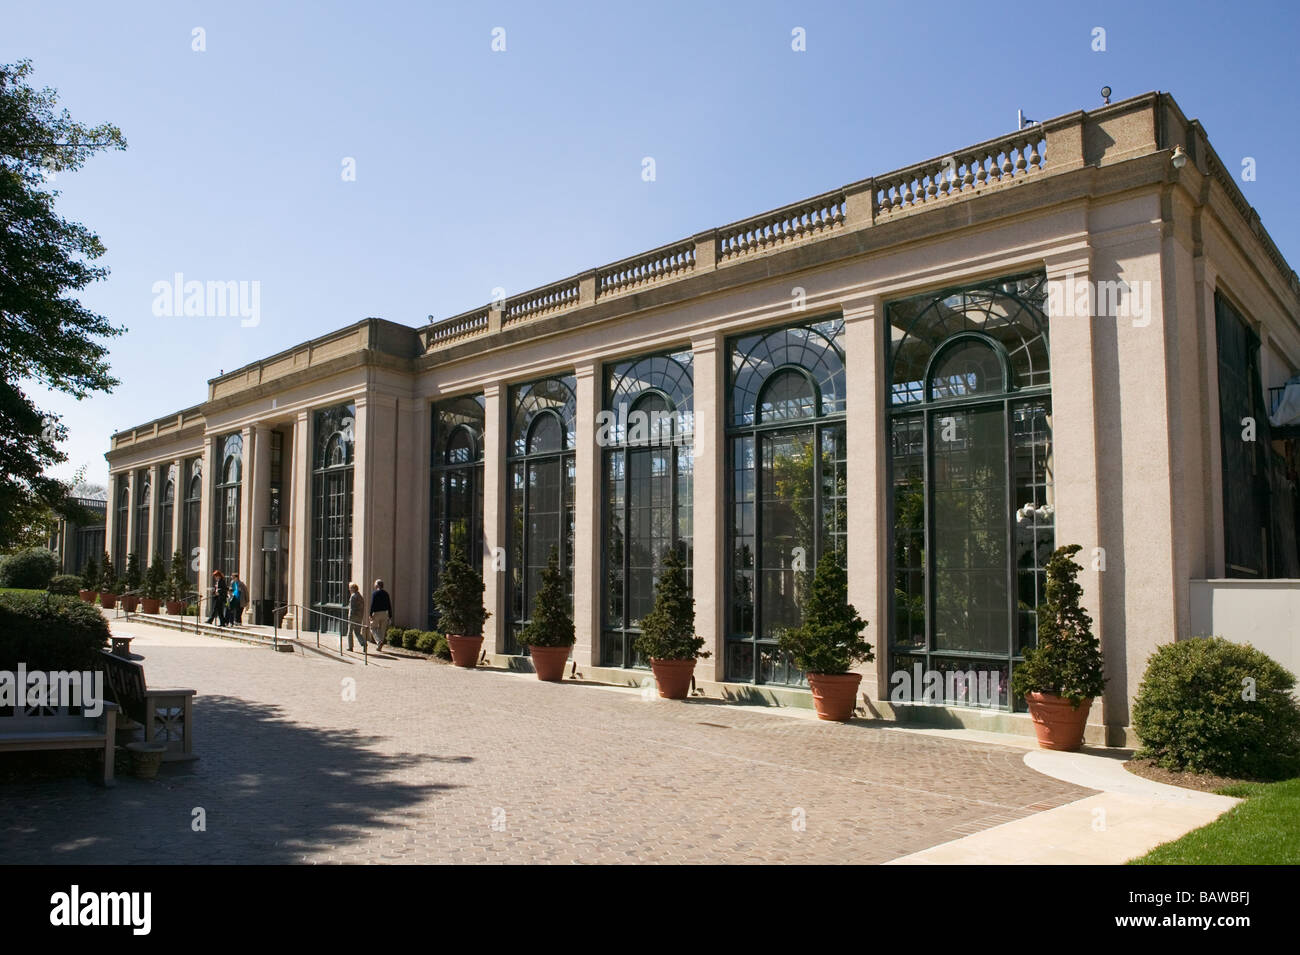 The Conservatory At Longwood Gardens In Kennett Square Pennsylvania Is One  Of The Largest Greenhouses In